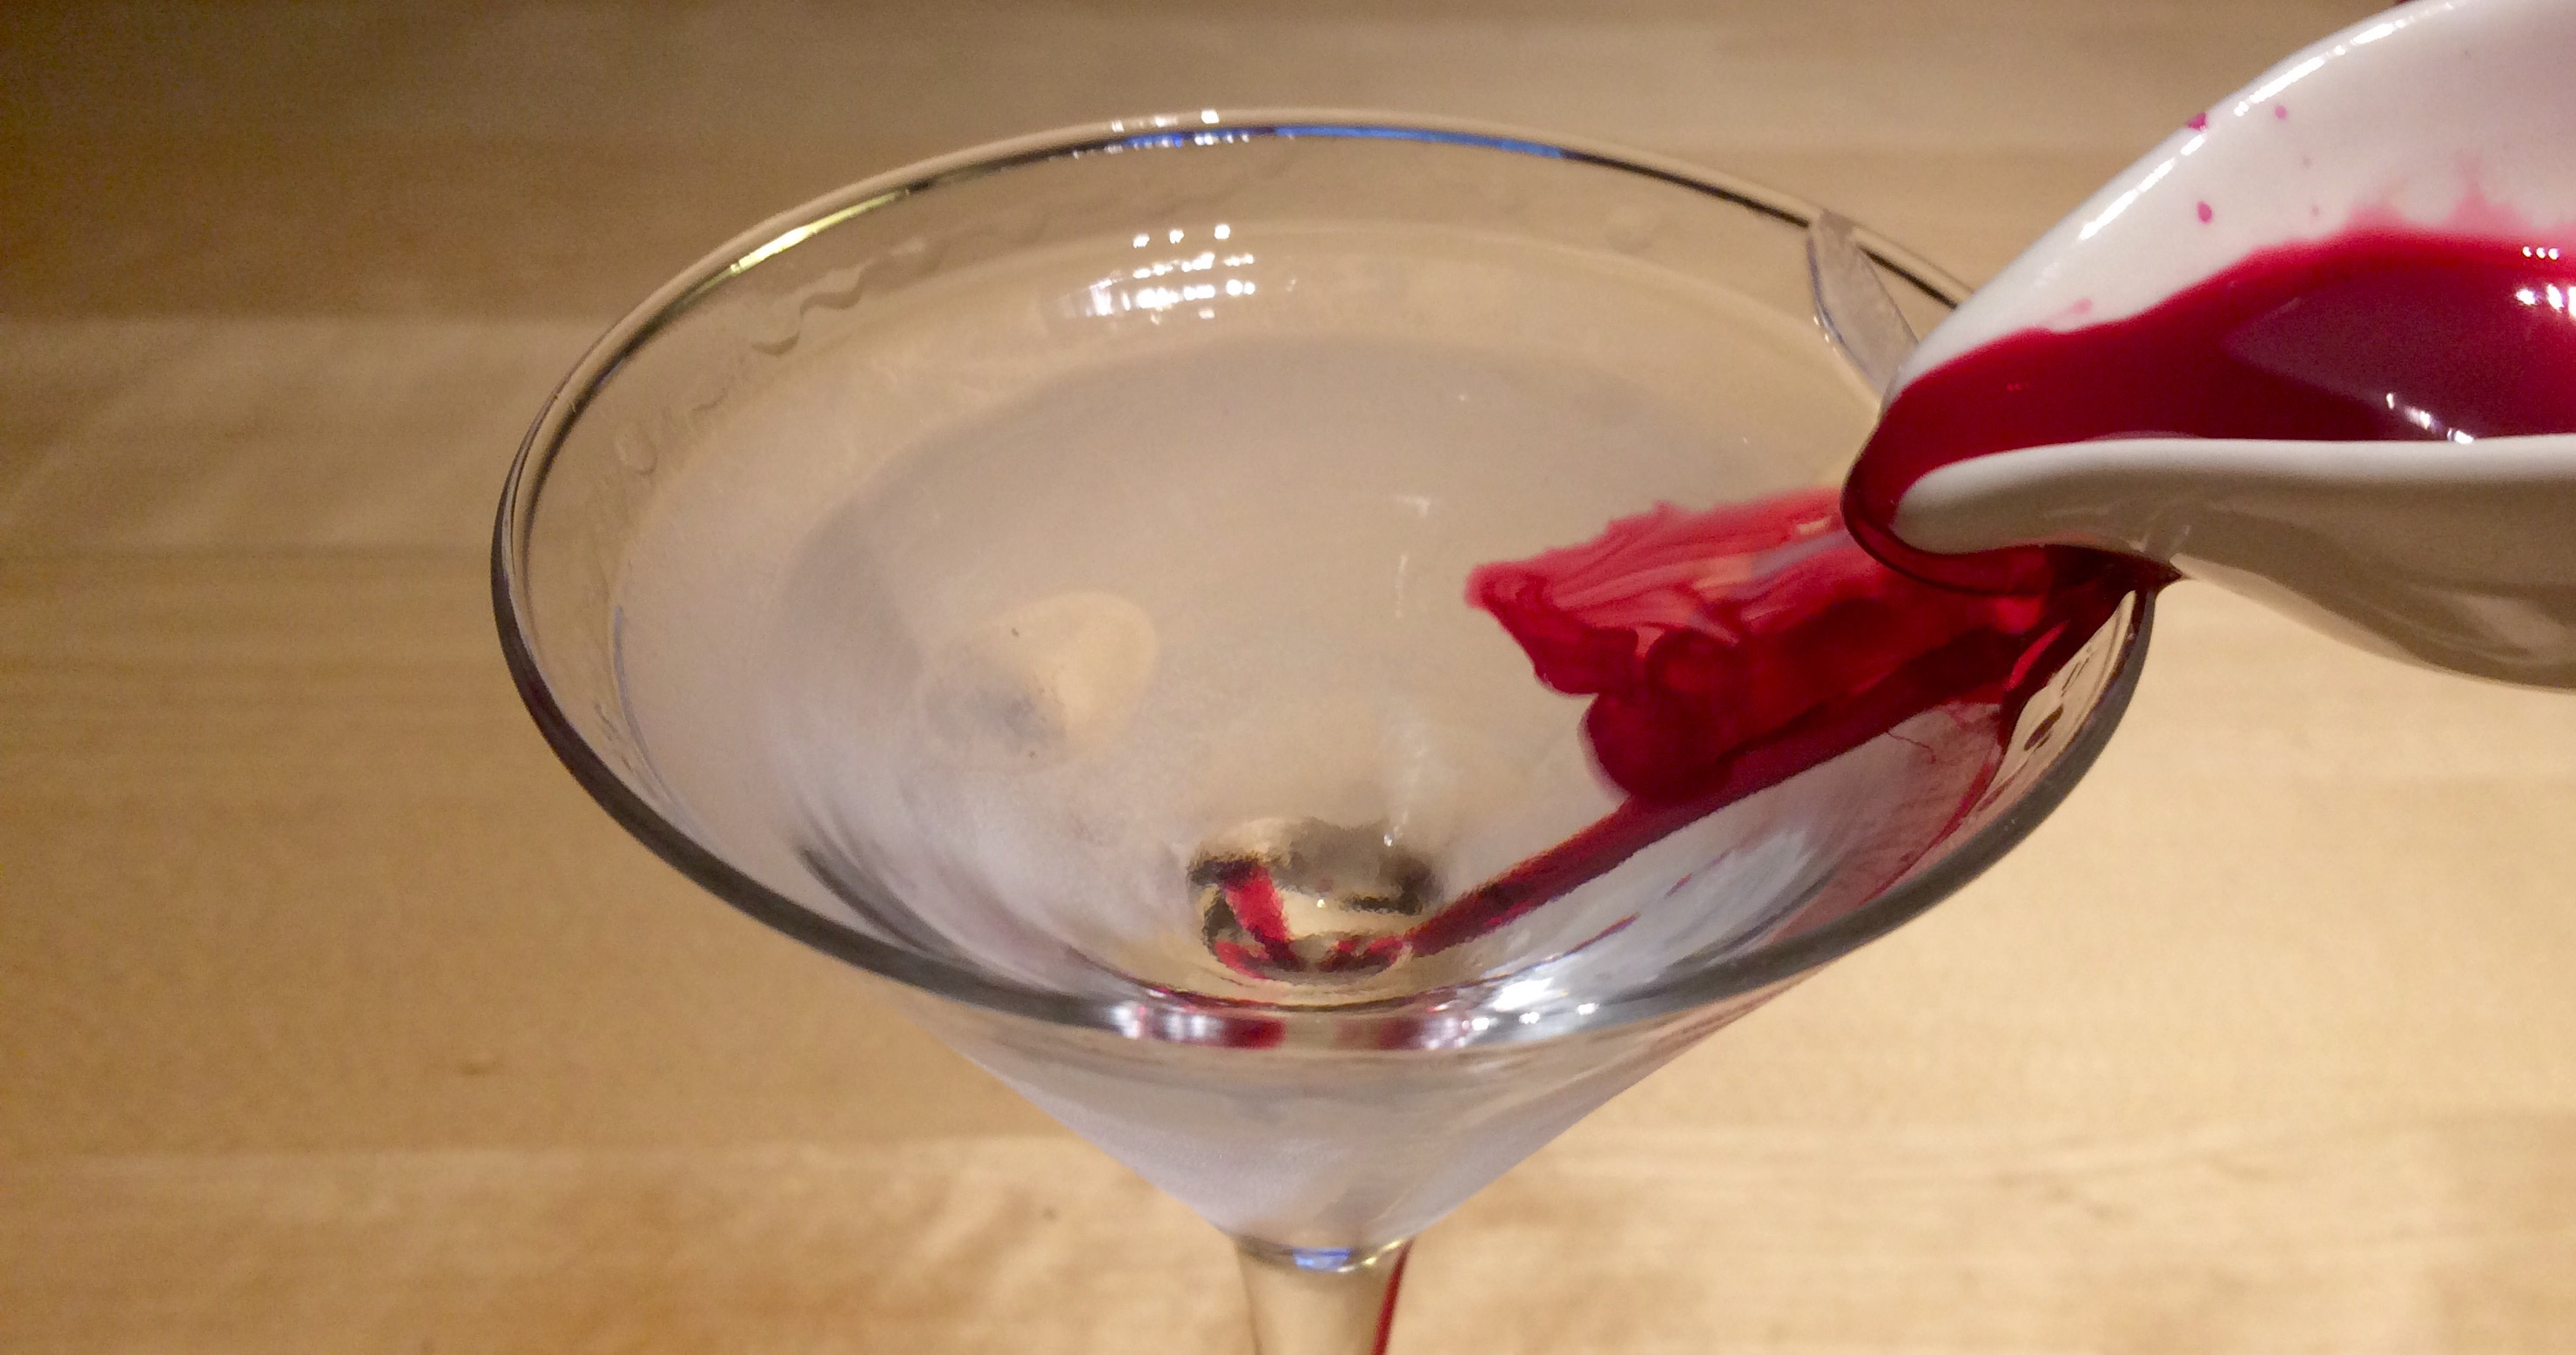 The Beet Up Gibson Martini | THE MARTINI DIARY